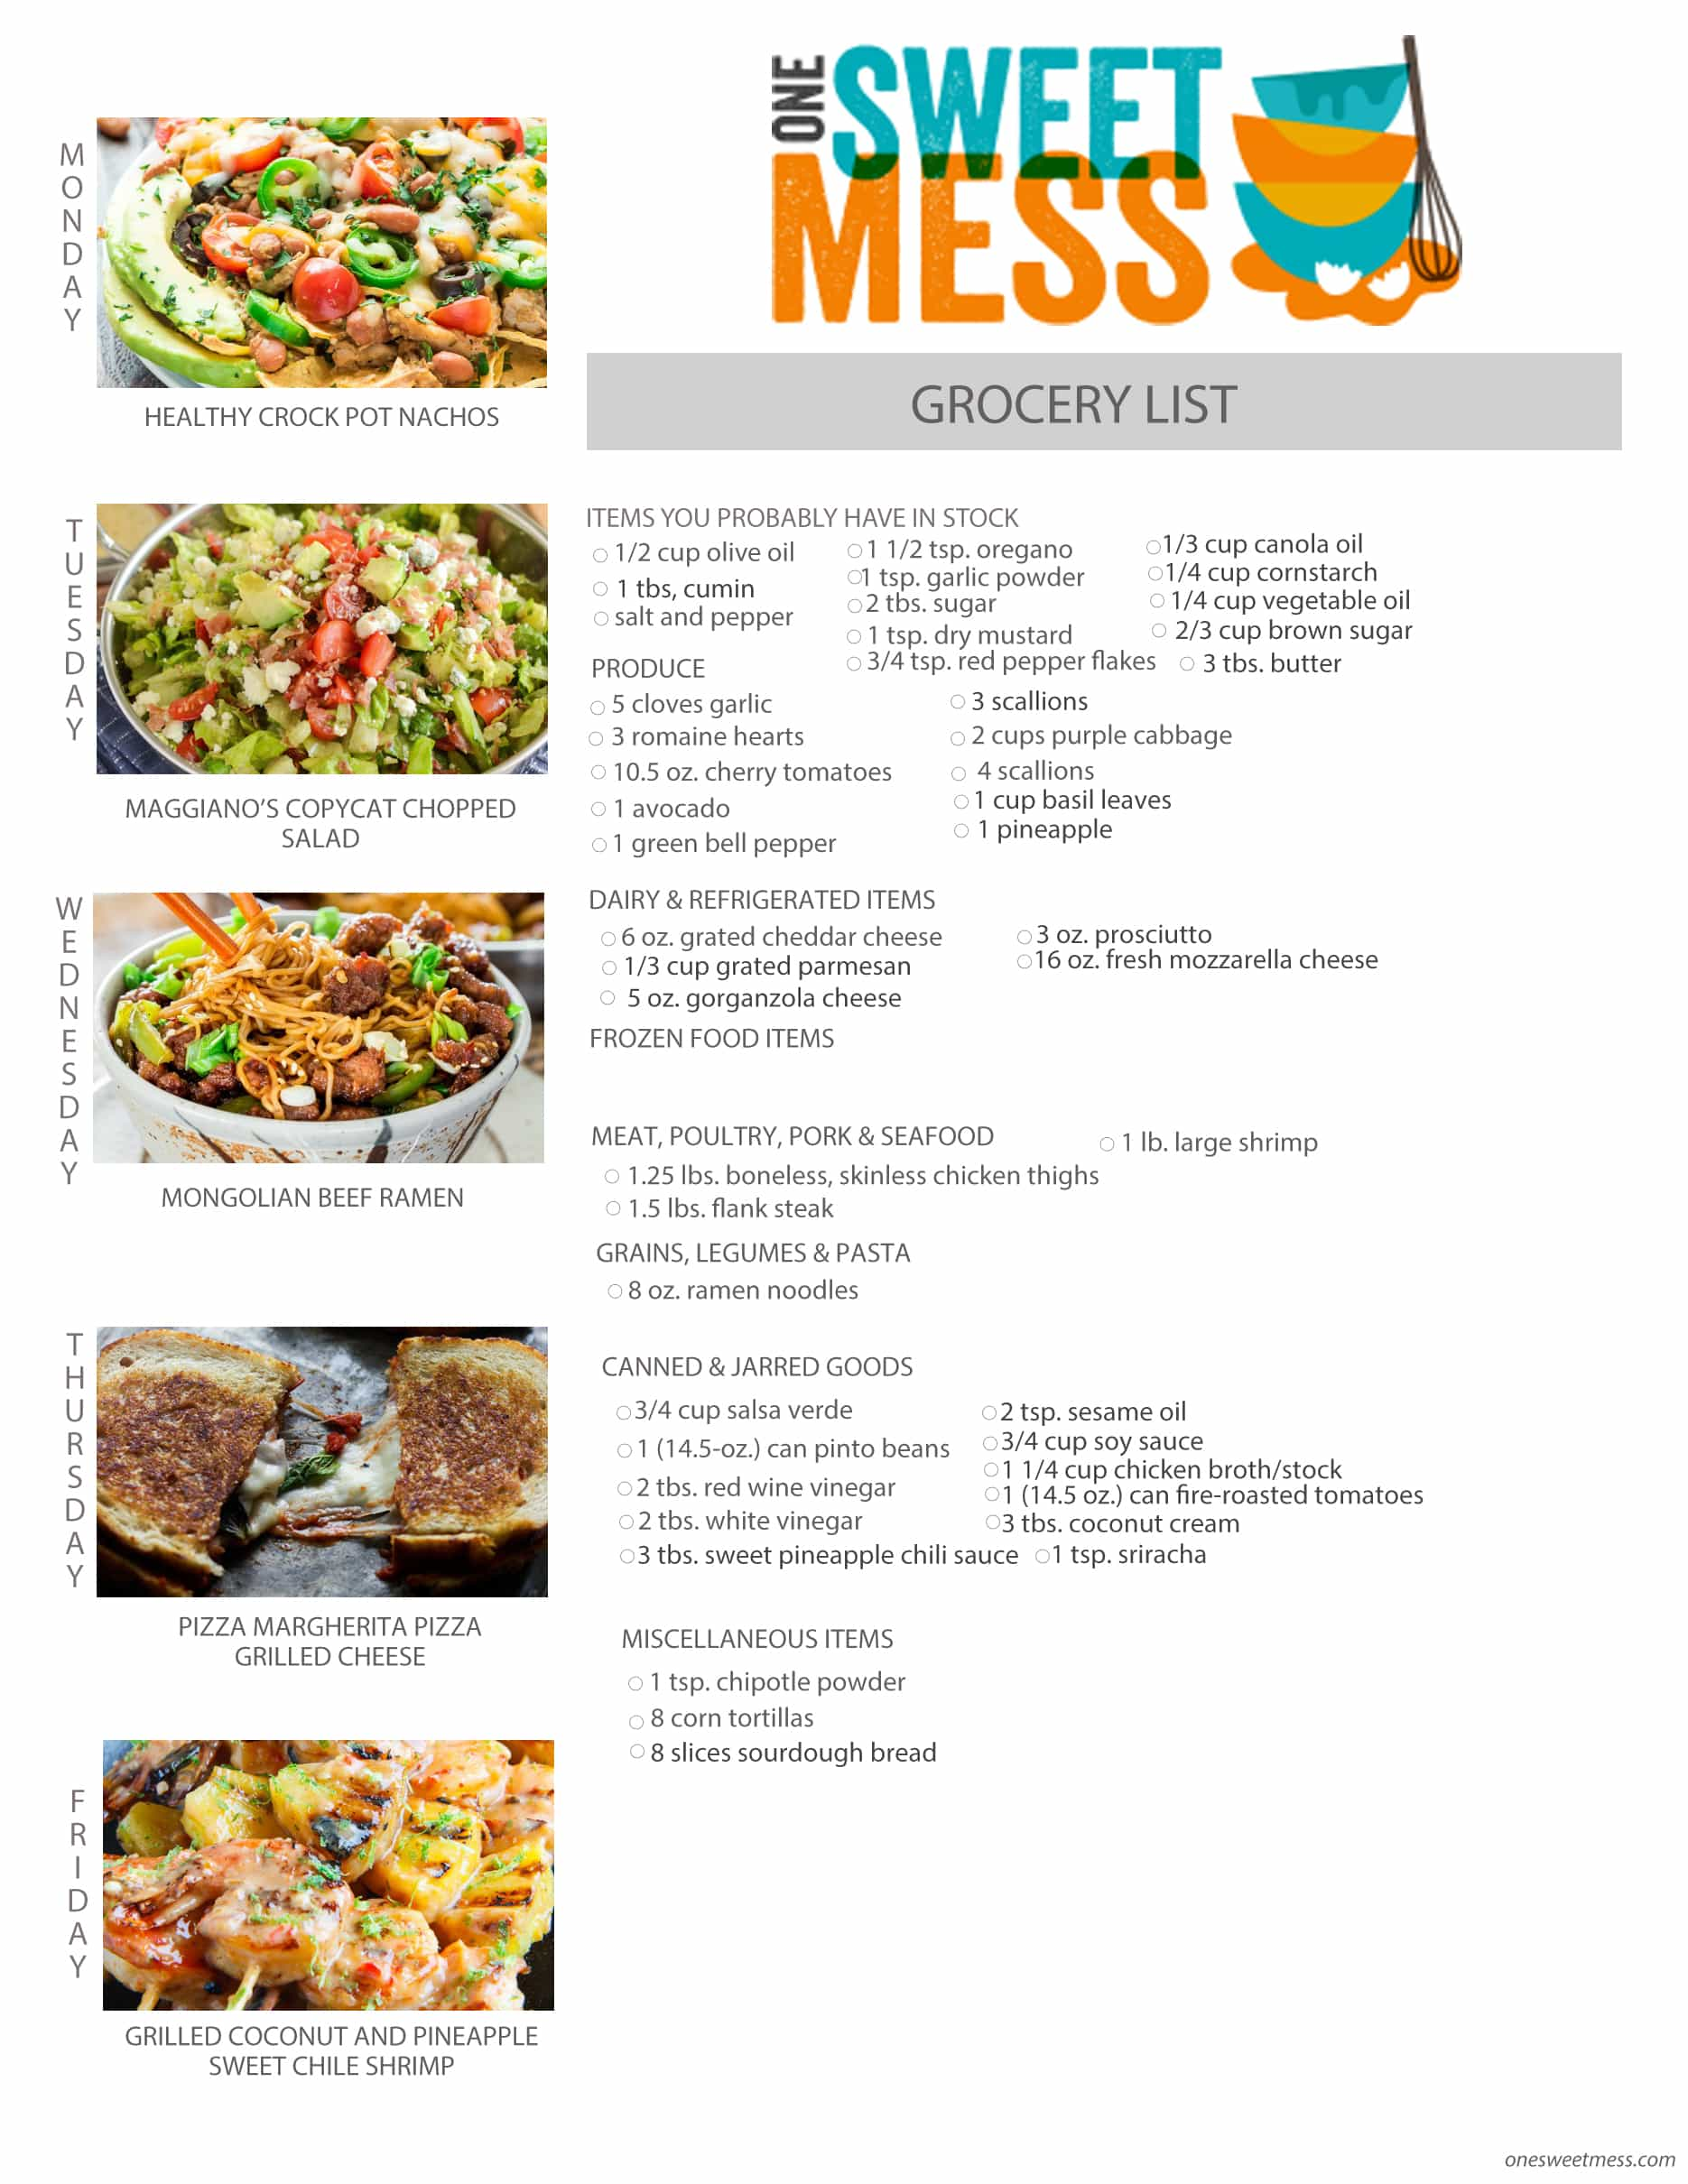 Week of May 9th, 2016 Weekly Meal Plan + Printable Grocery List